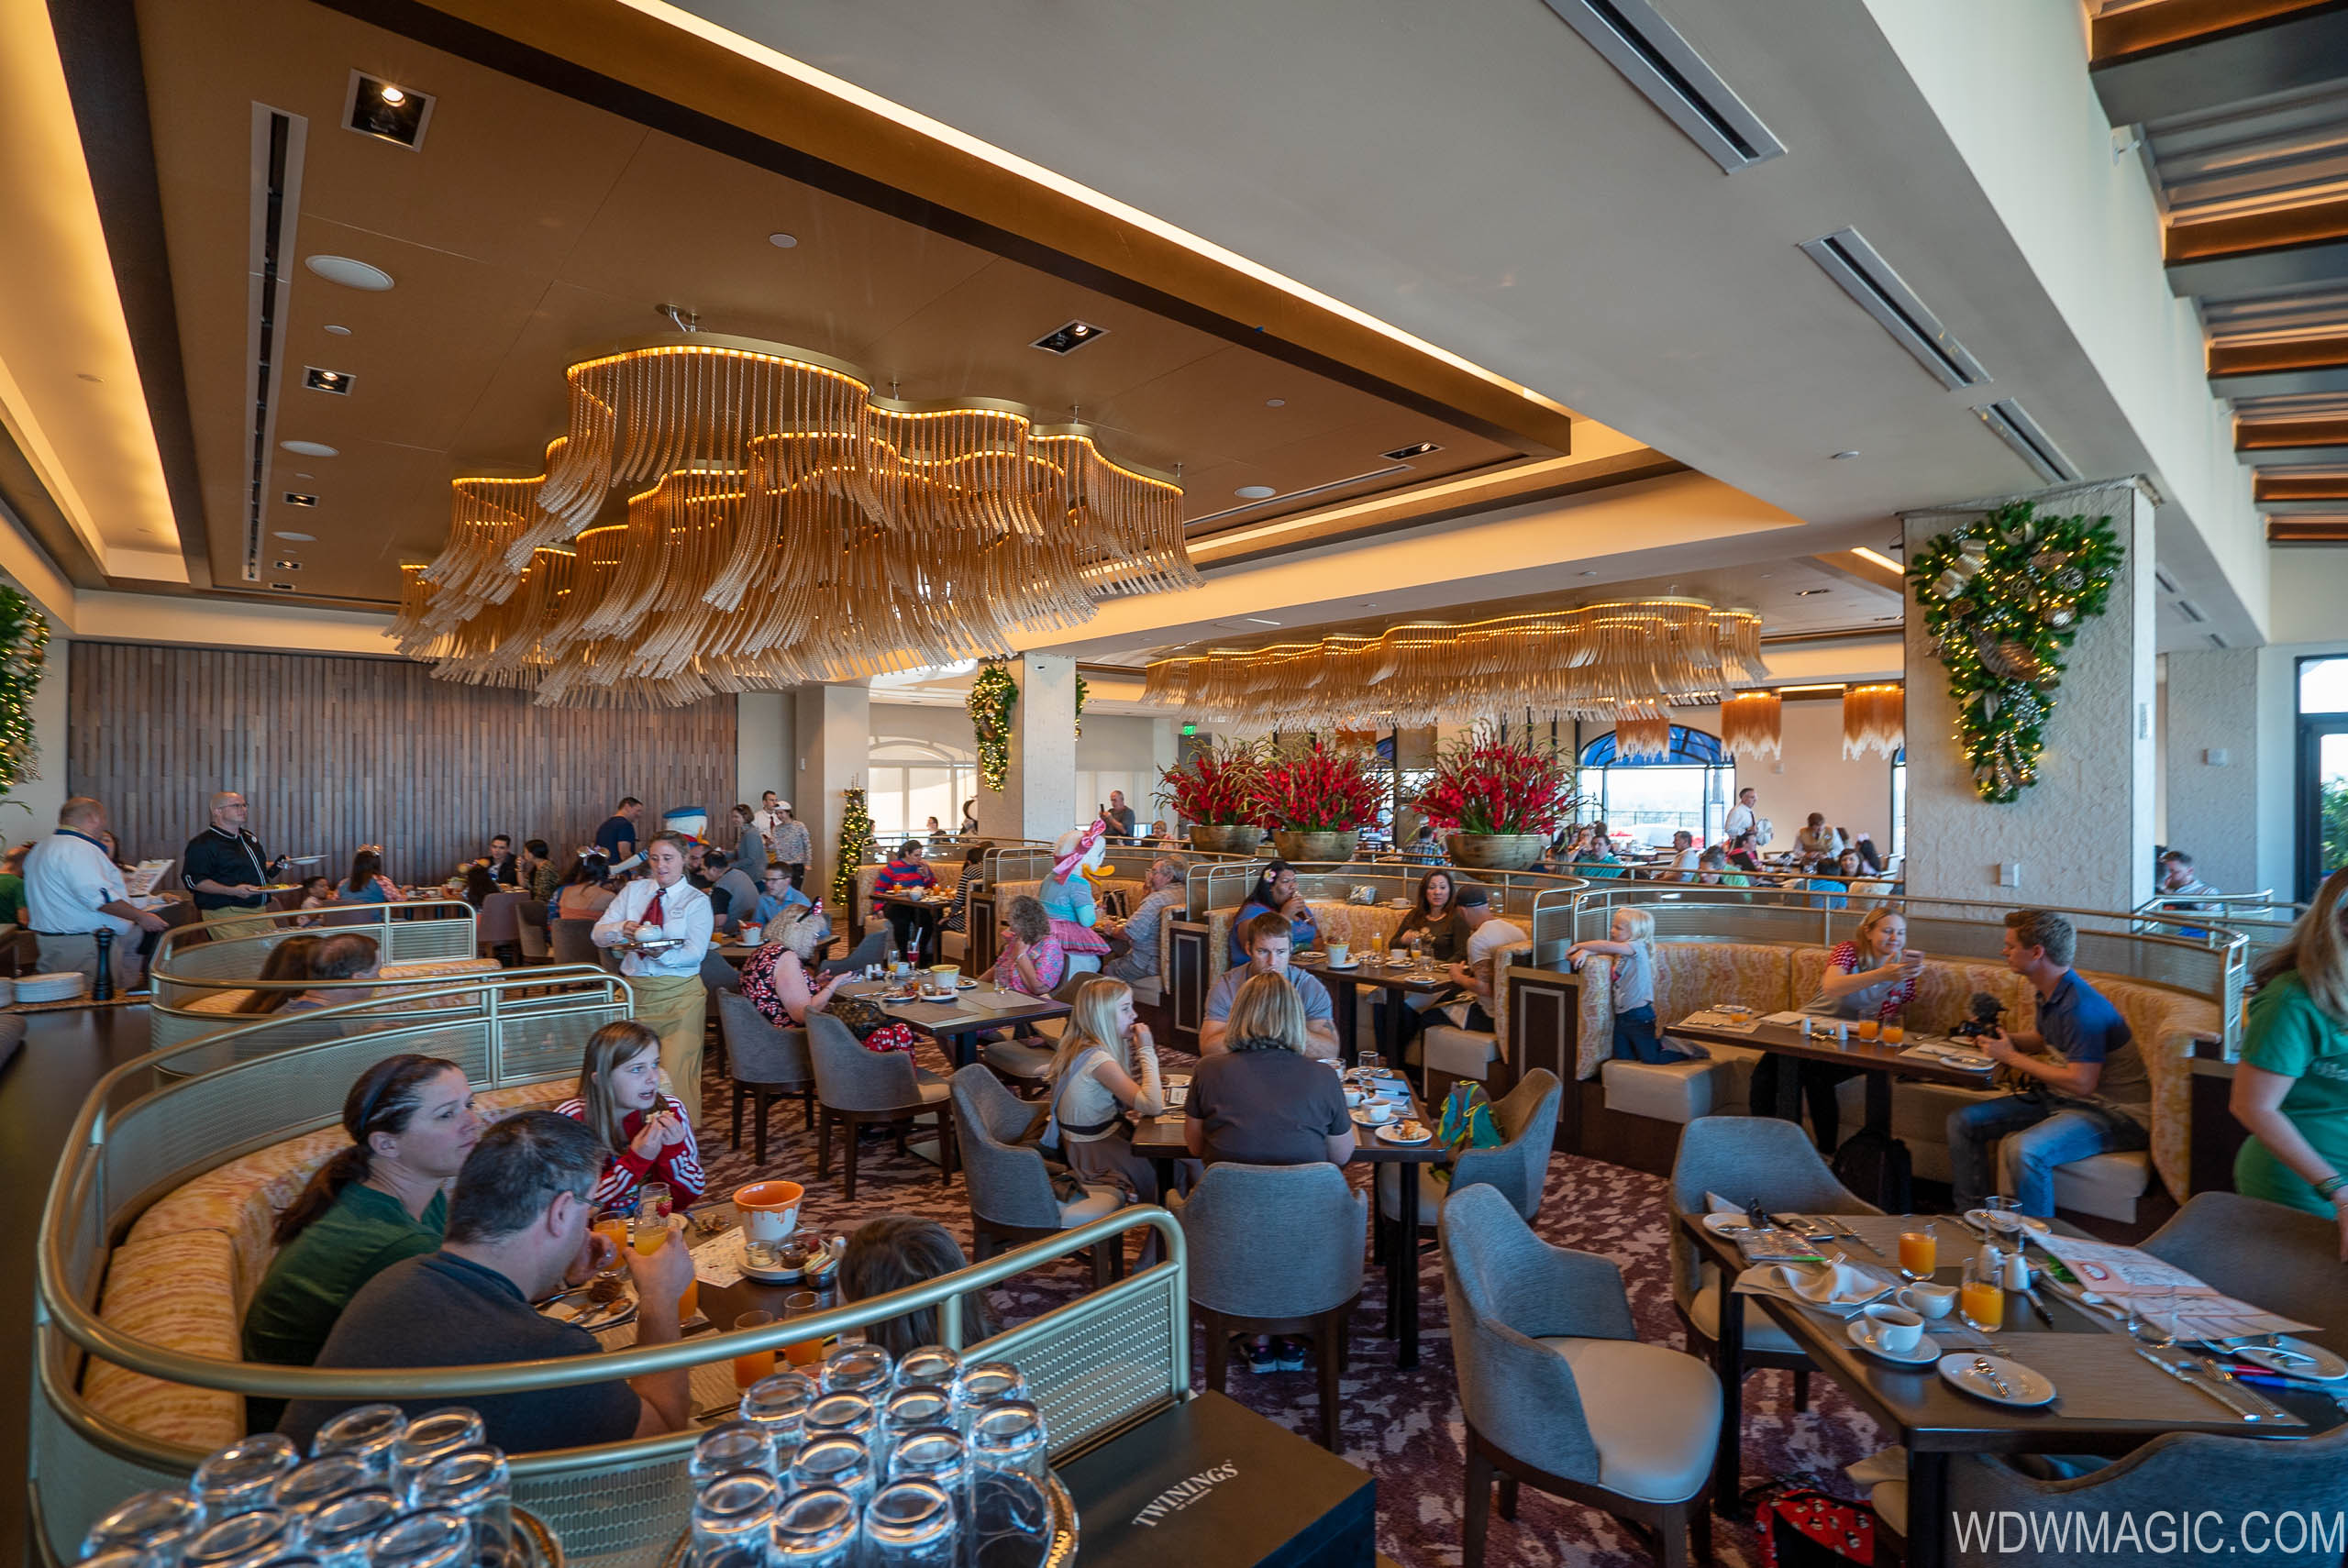 A modified Character Dining experience will be available at Topolino's Terrace in the Riviera Resort